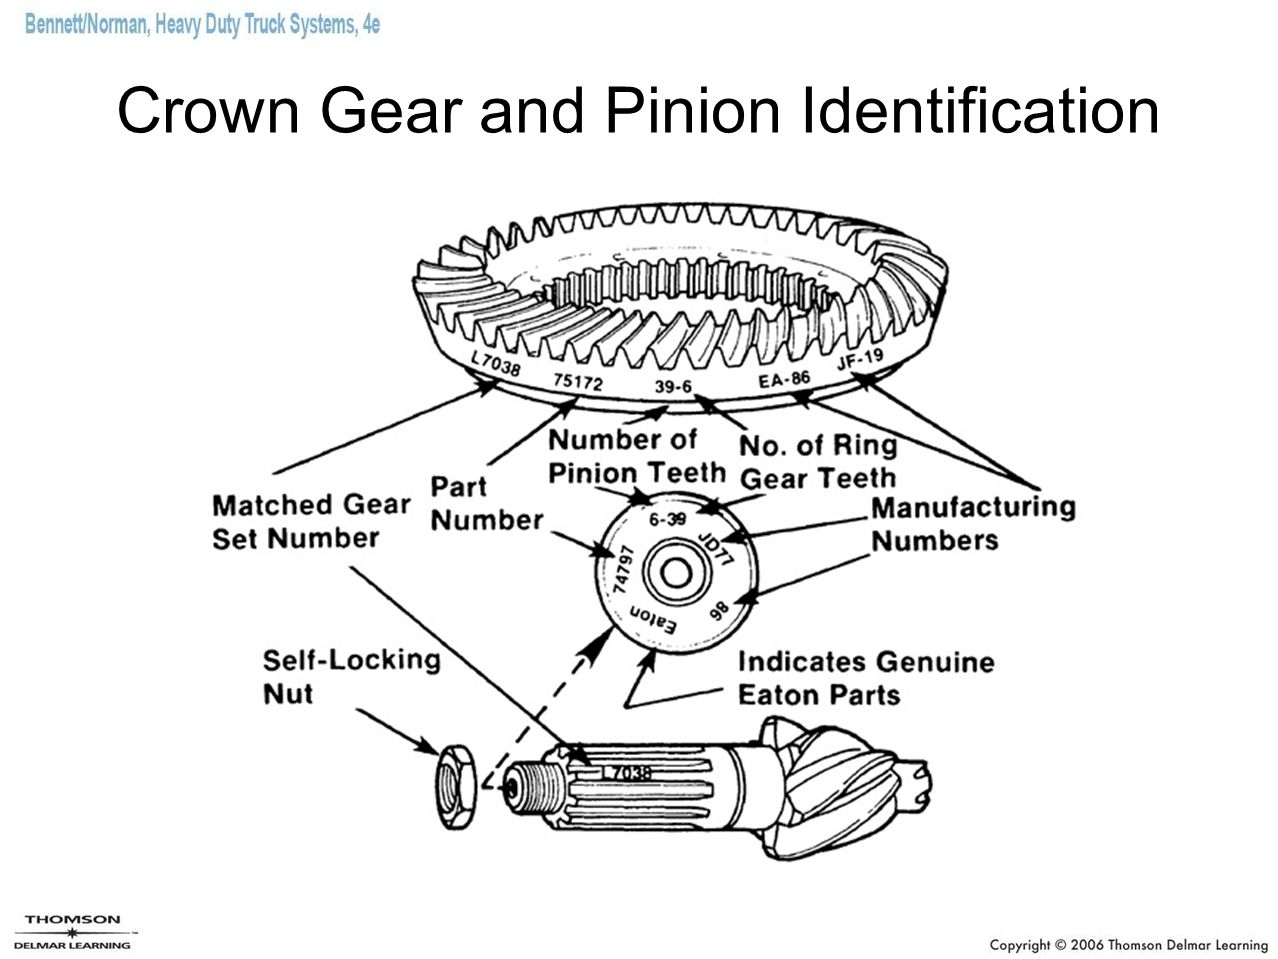 Crown Gear and Pinion Identification